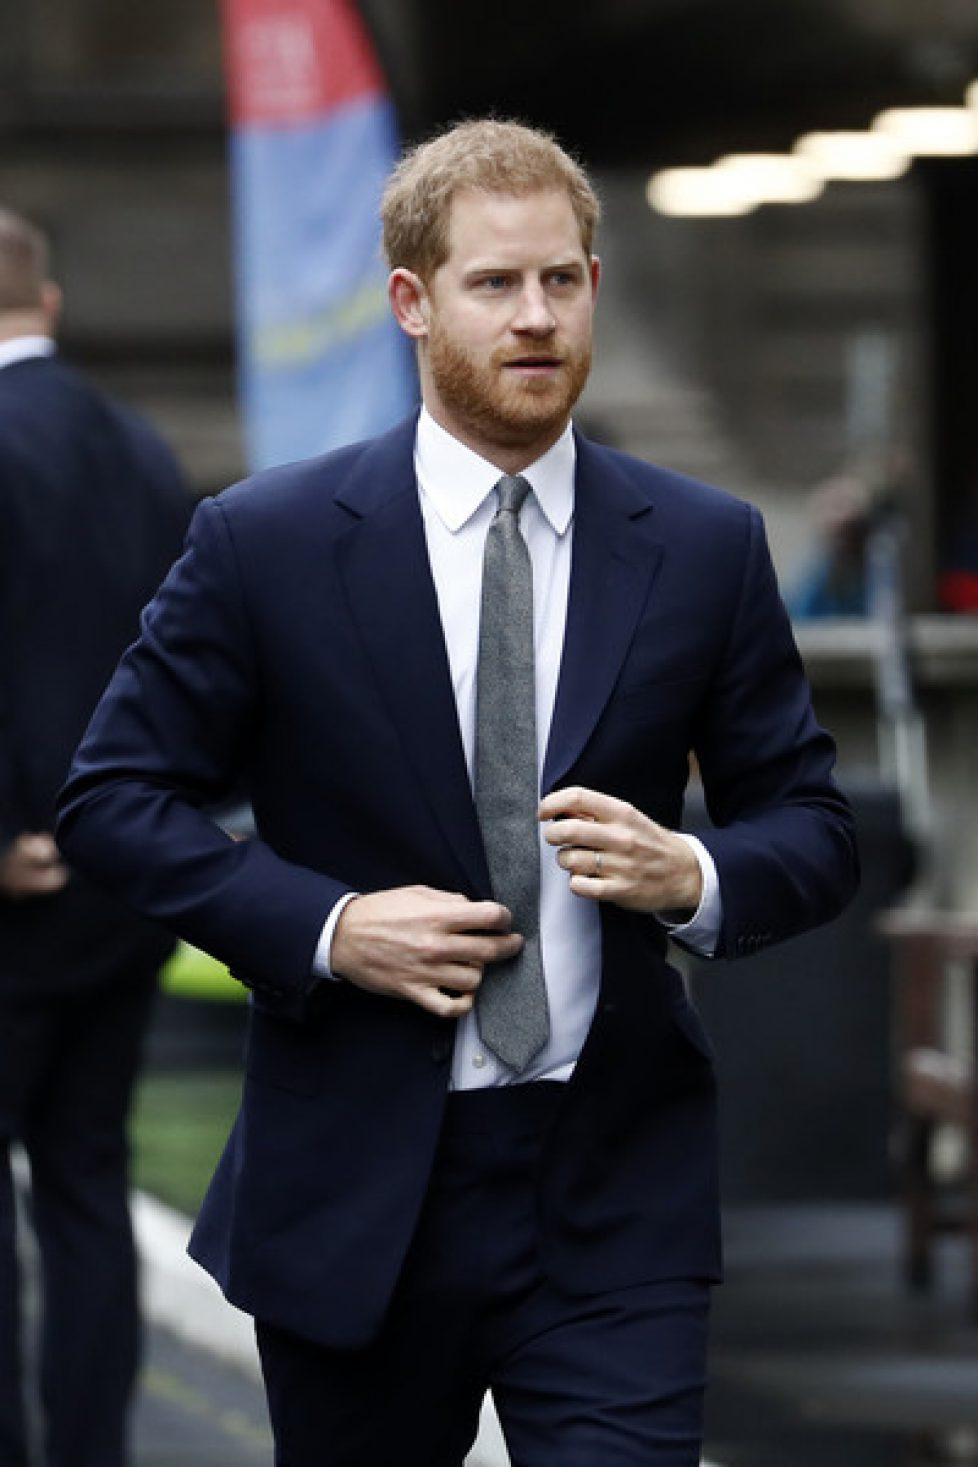 Duke+Sussex+Attends+Veteran+Mental+Health+9beUYceuT15l